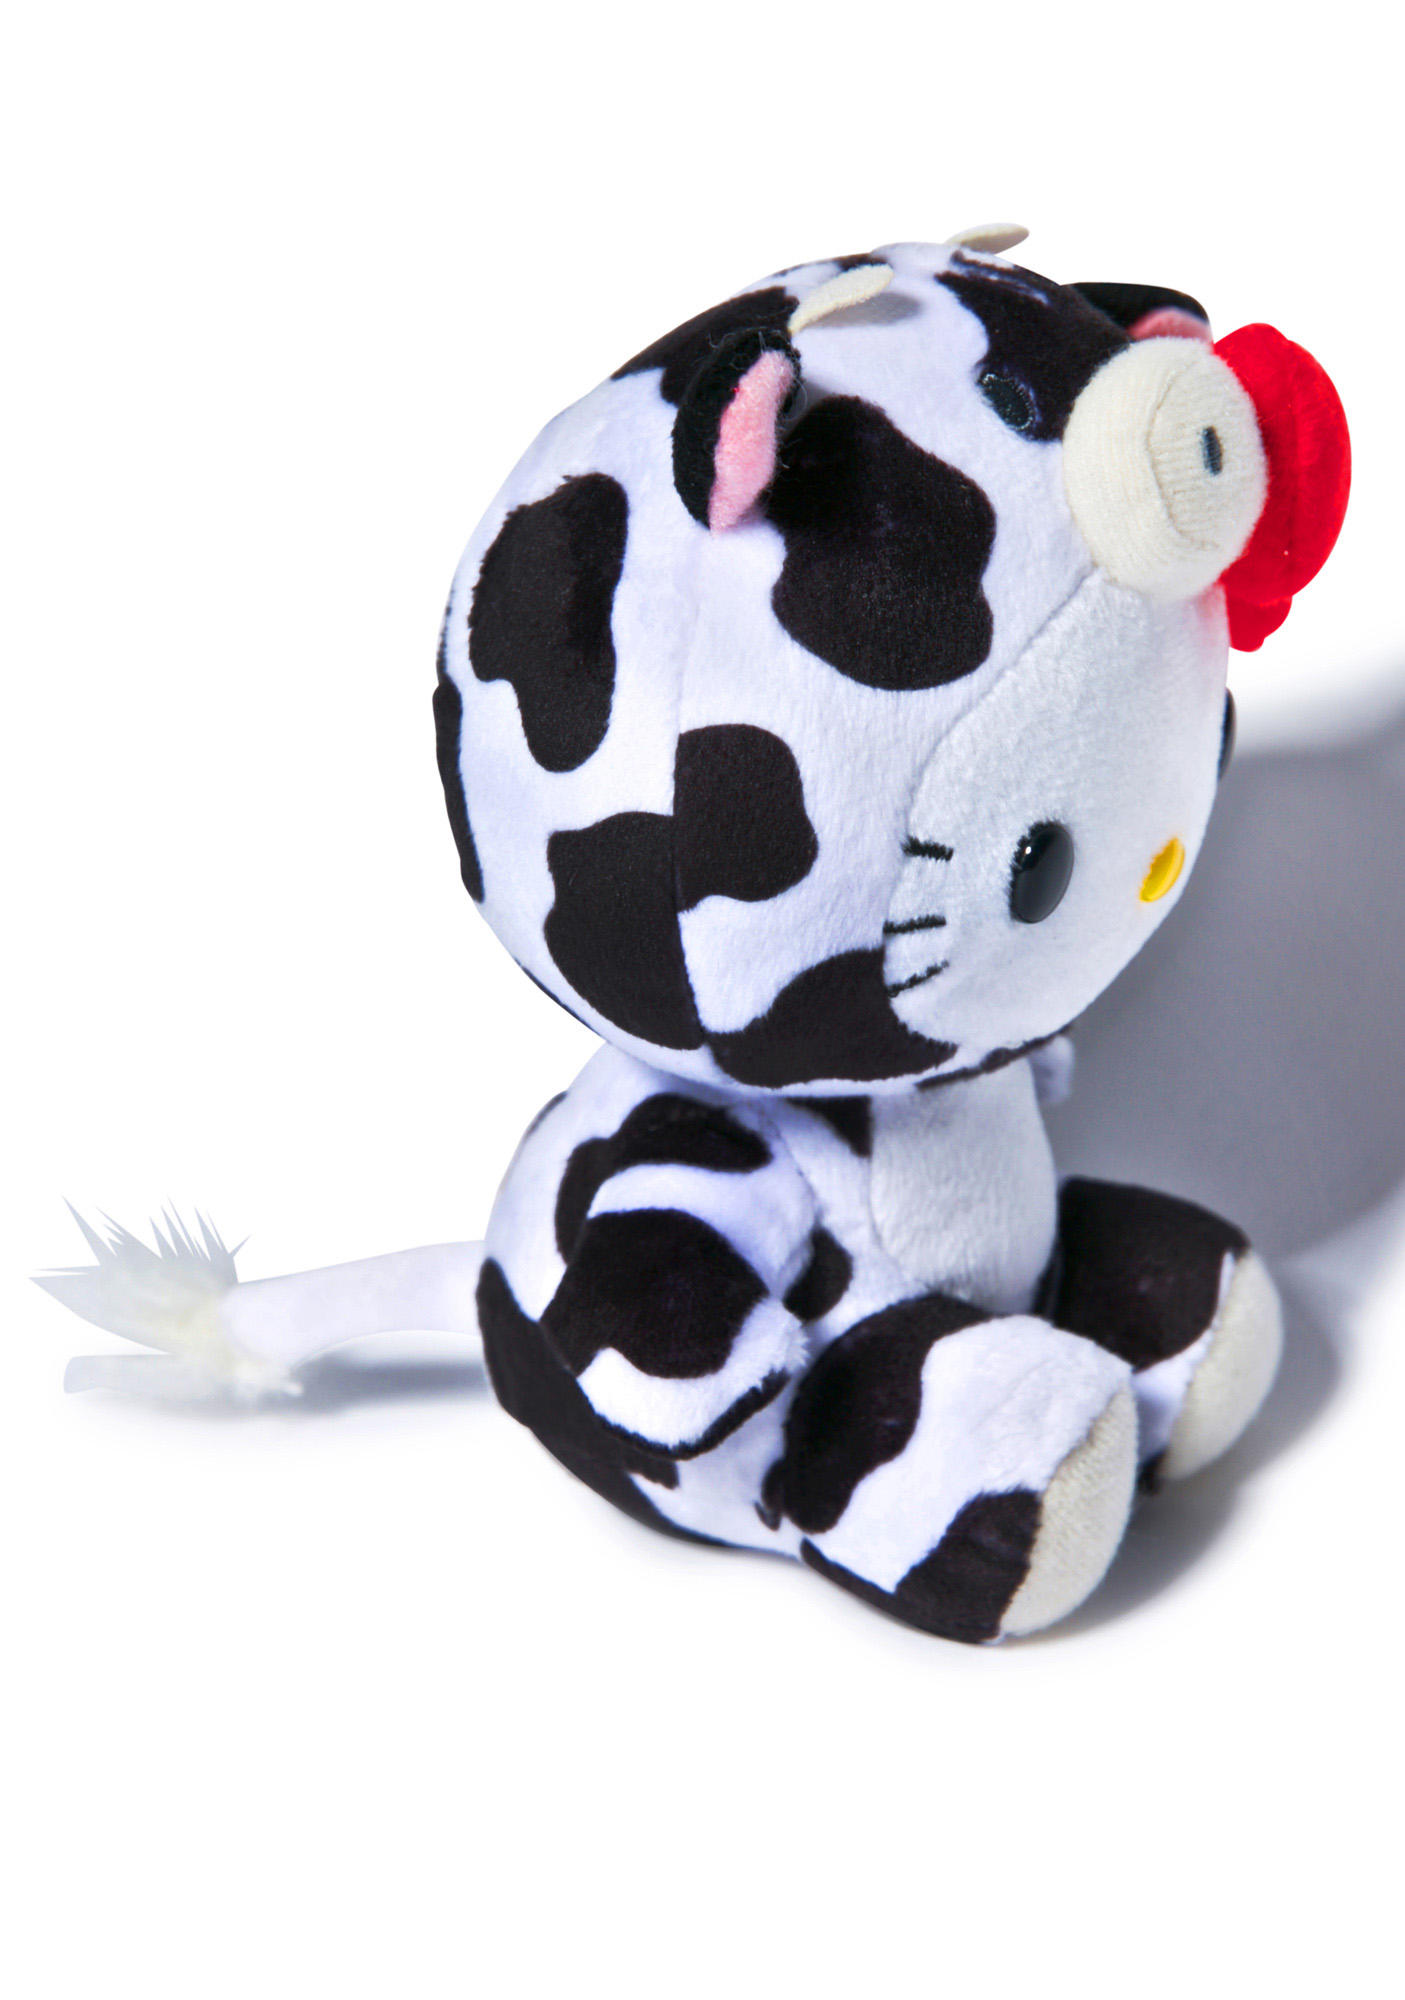 753a7fcaa Sanrio Farm Friends Hello Kitty Cow Plush from Dolls Kill